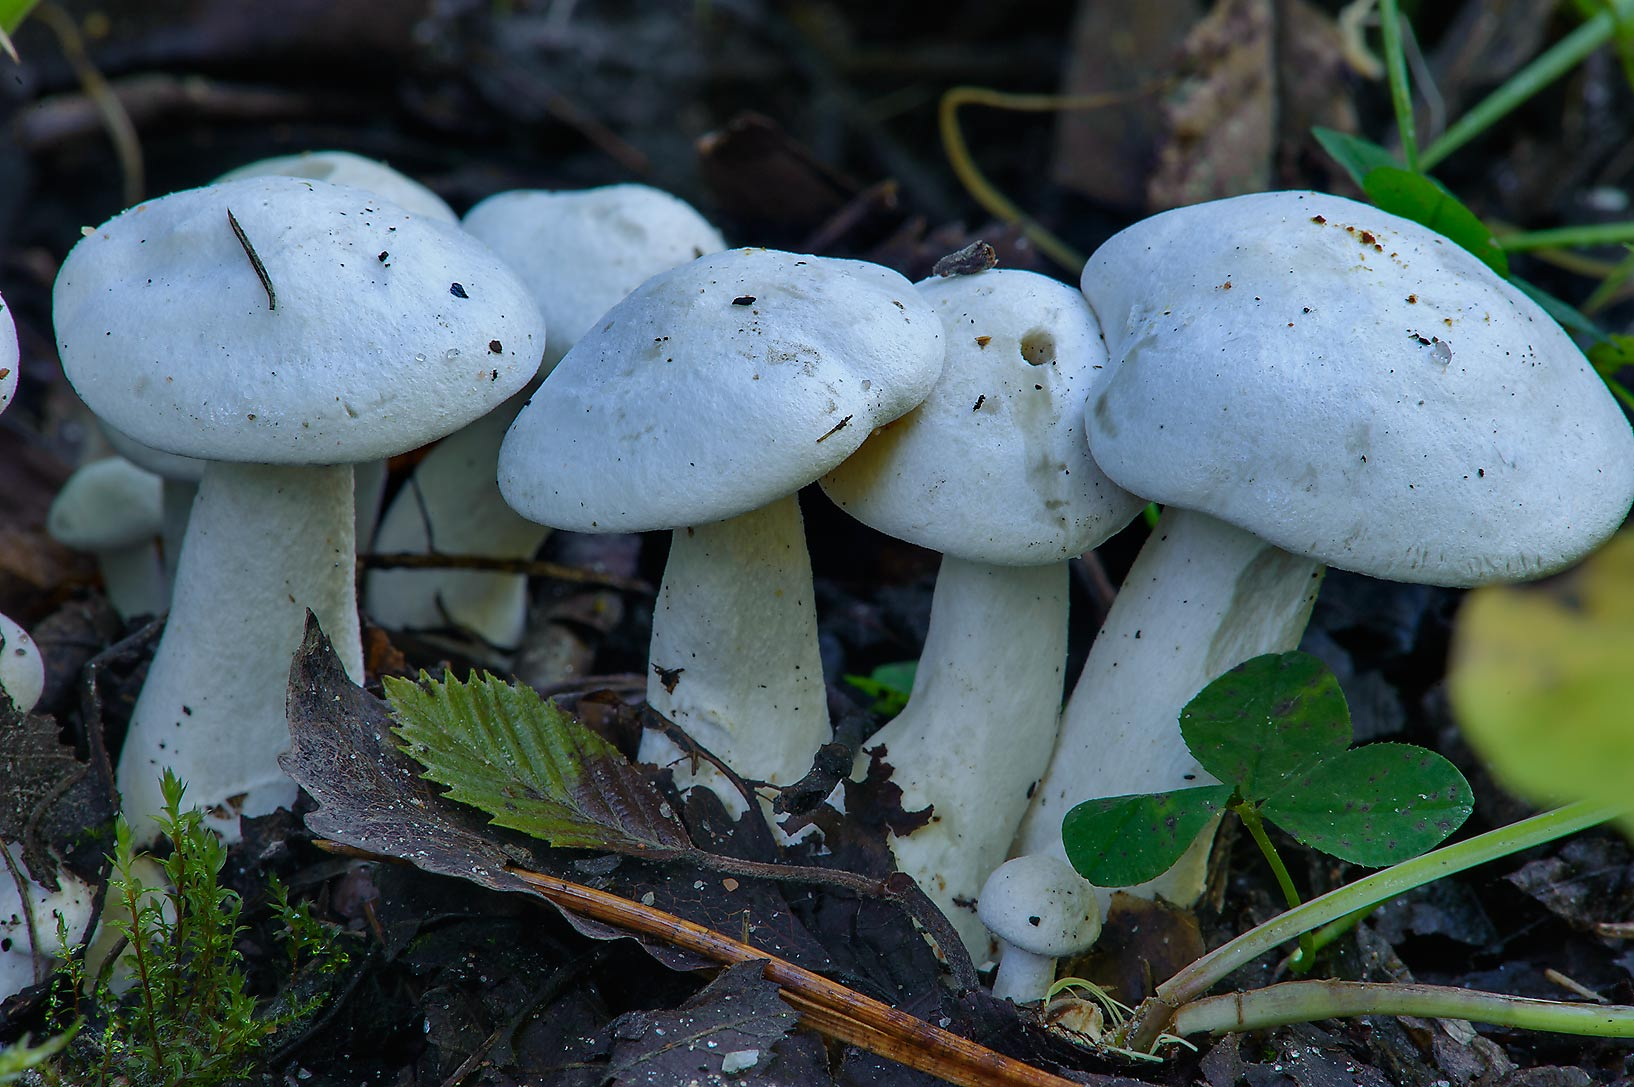 White domecap mushrooms (Leucocybe connata...Lake, near St.Petersburg. Russia